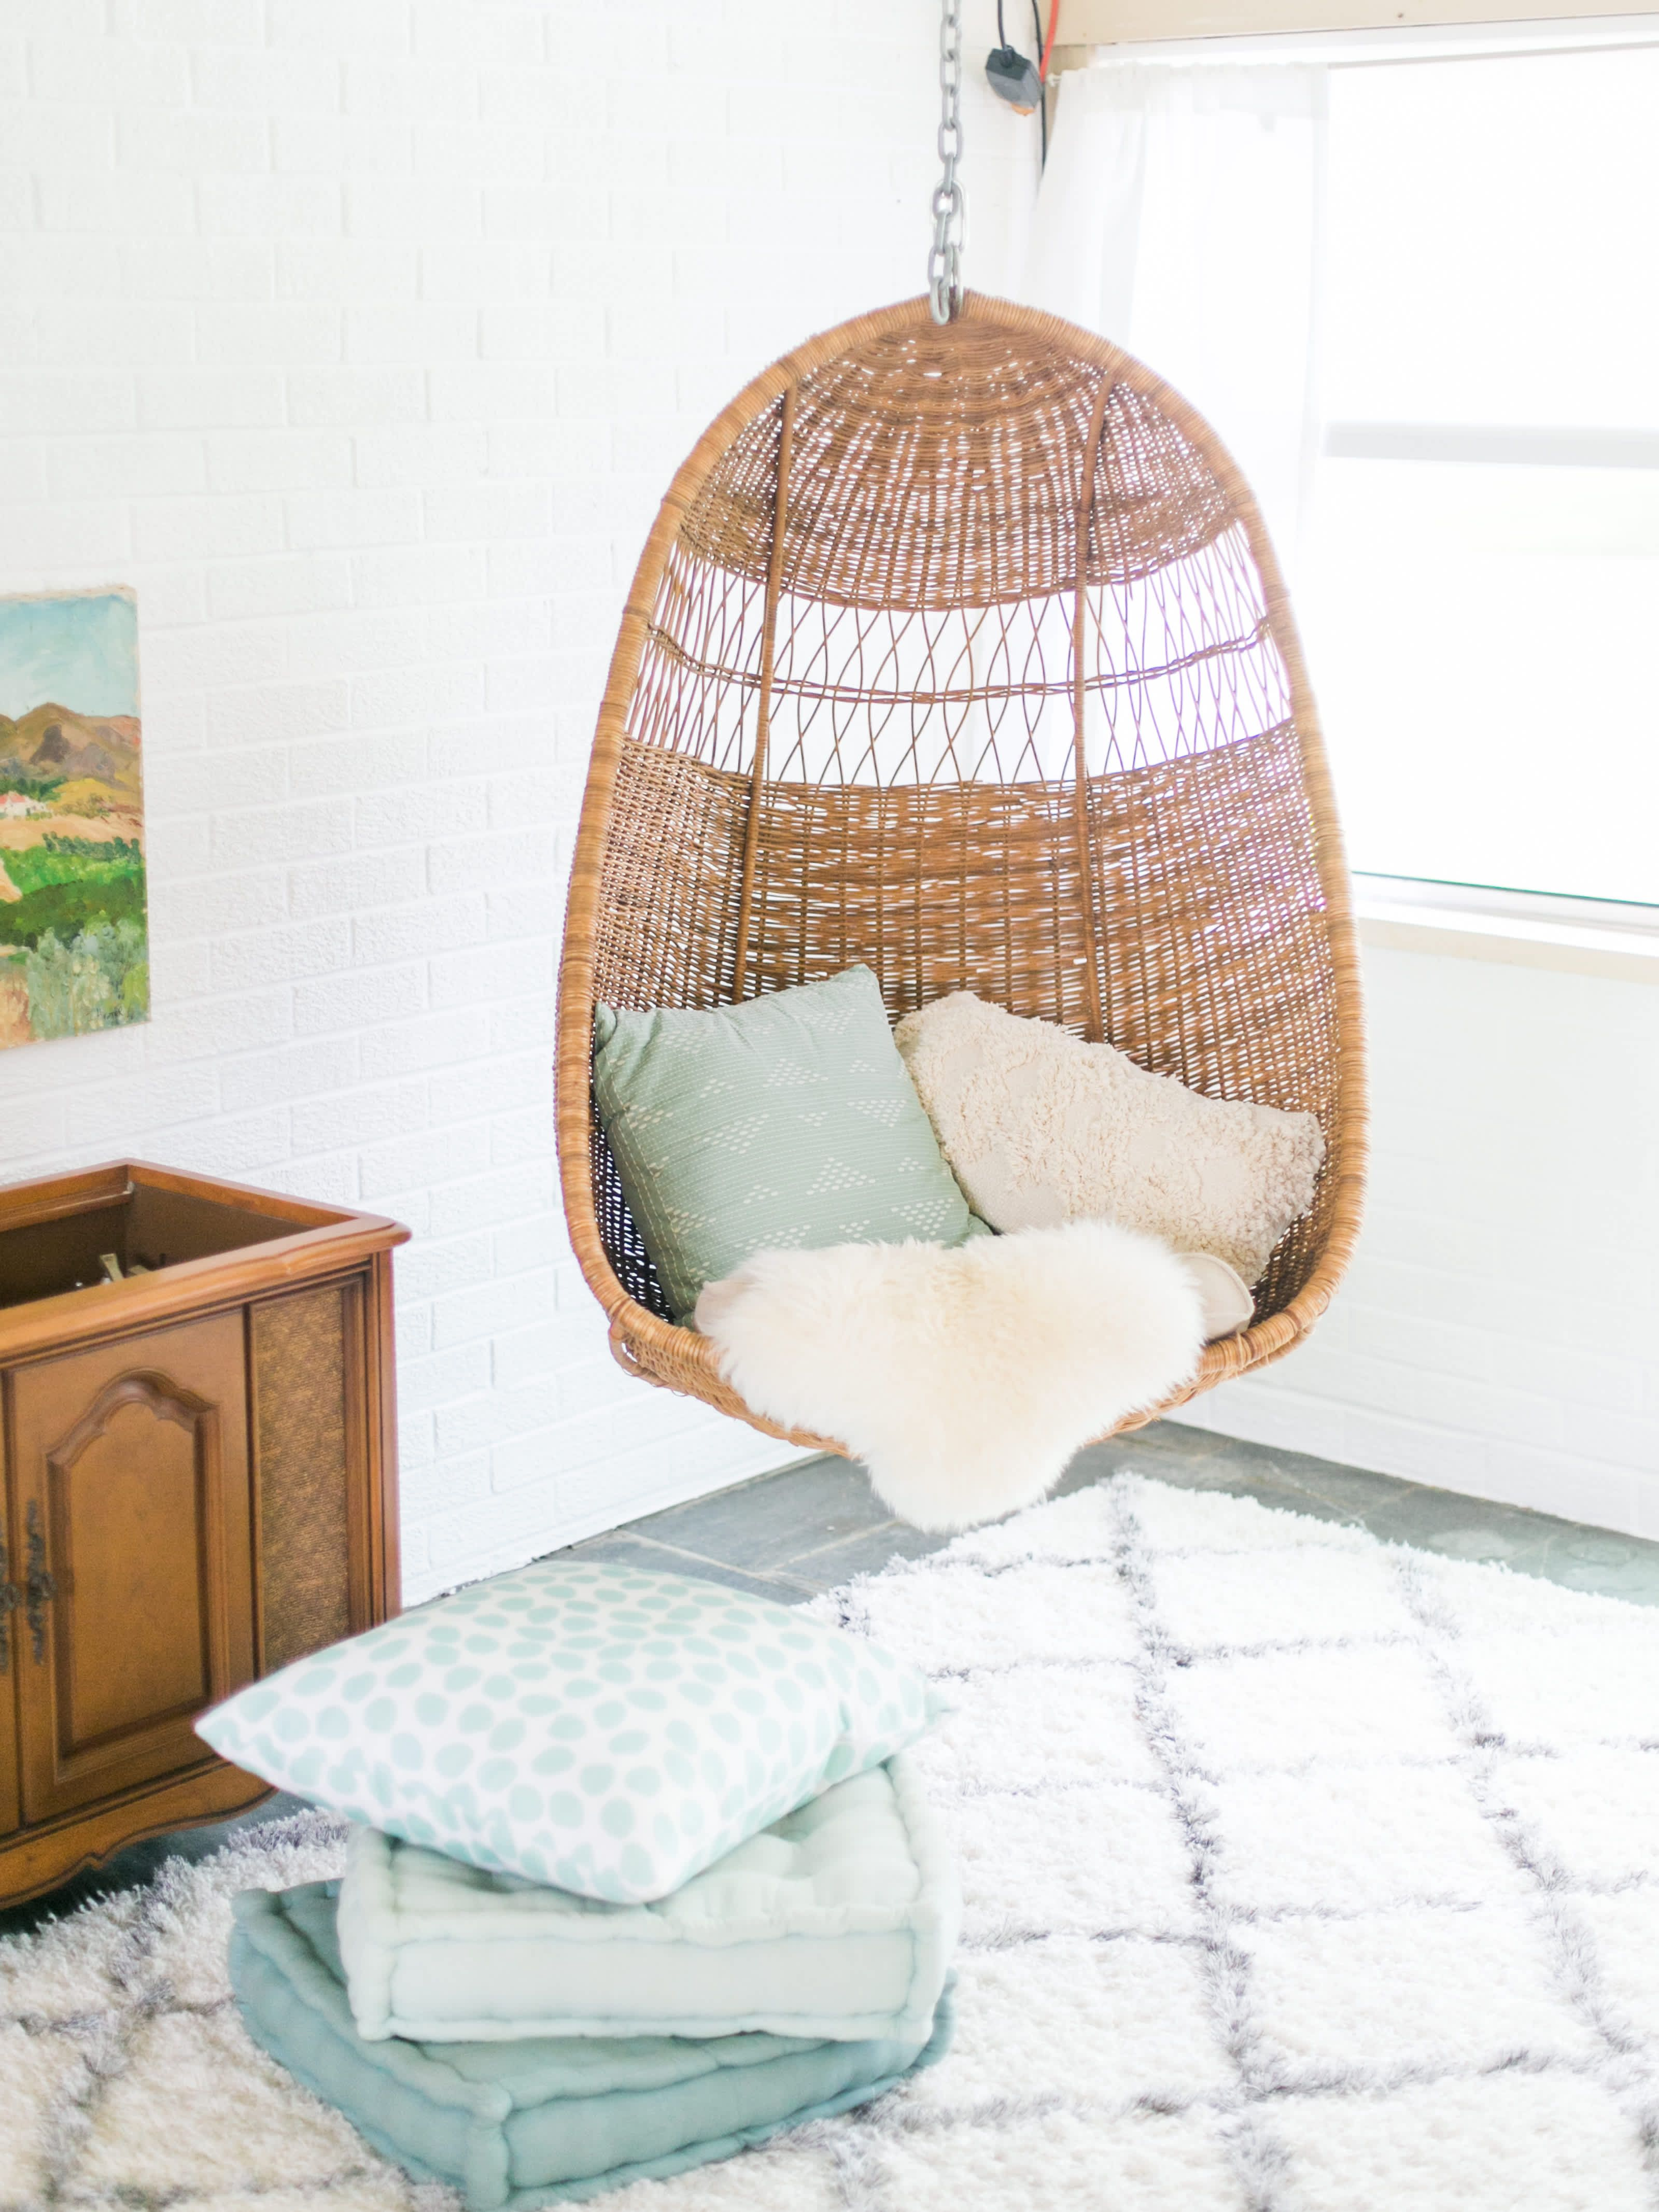 A Blogger S 1960s House Is An Architectural Dream Home Accent Chairs For Living Room Comfy Chairs Hanging Chair From Ceiling